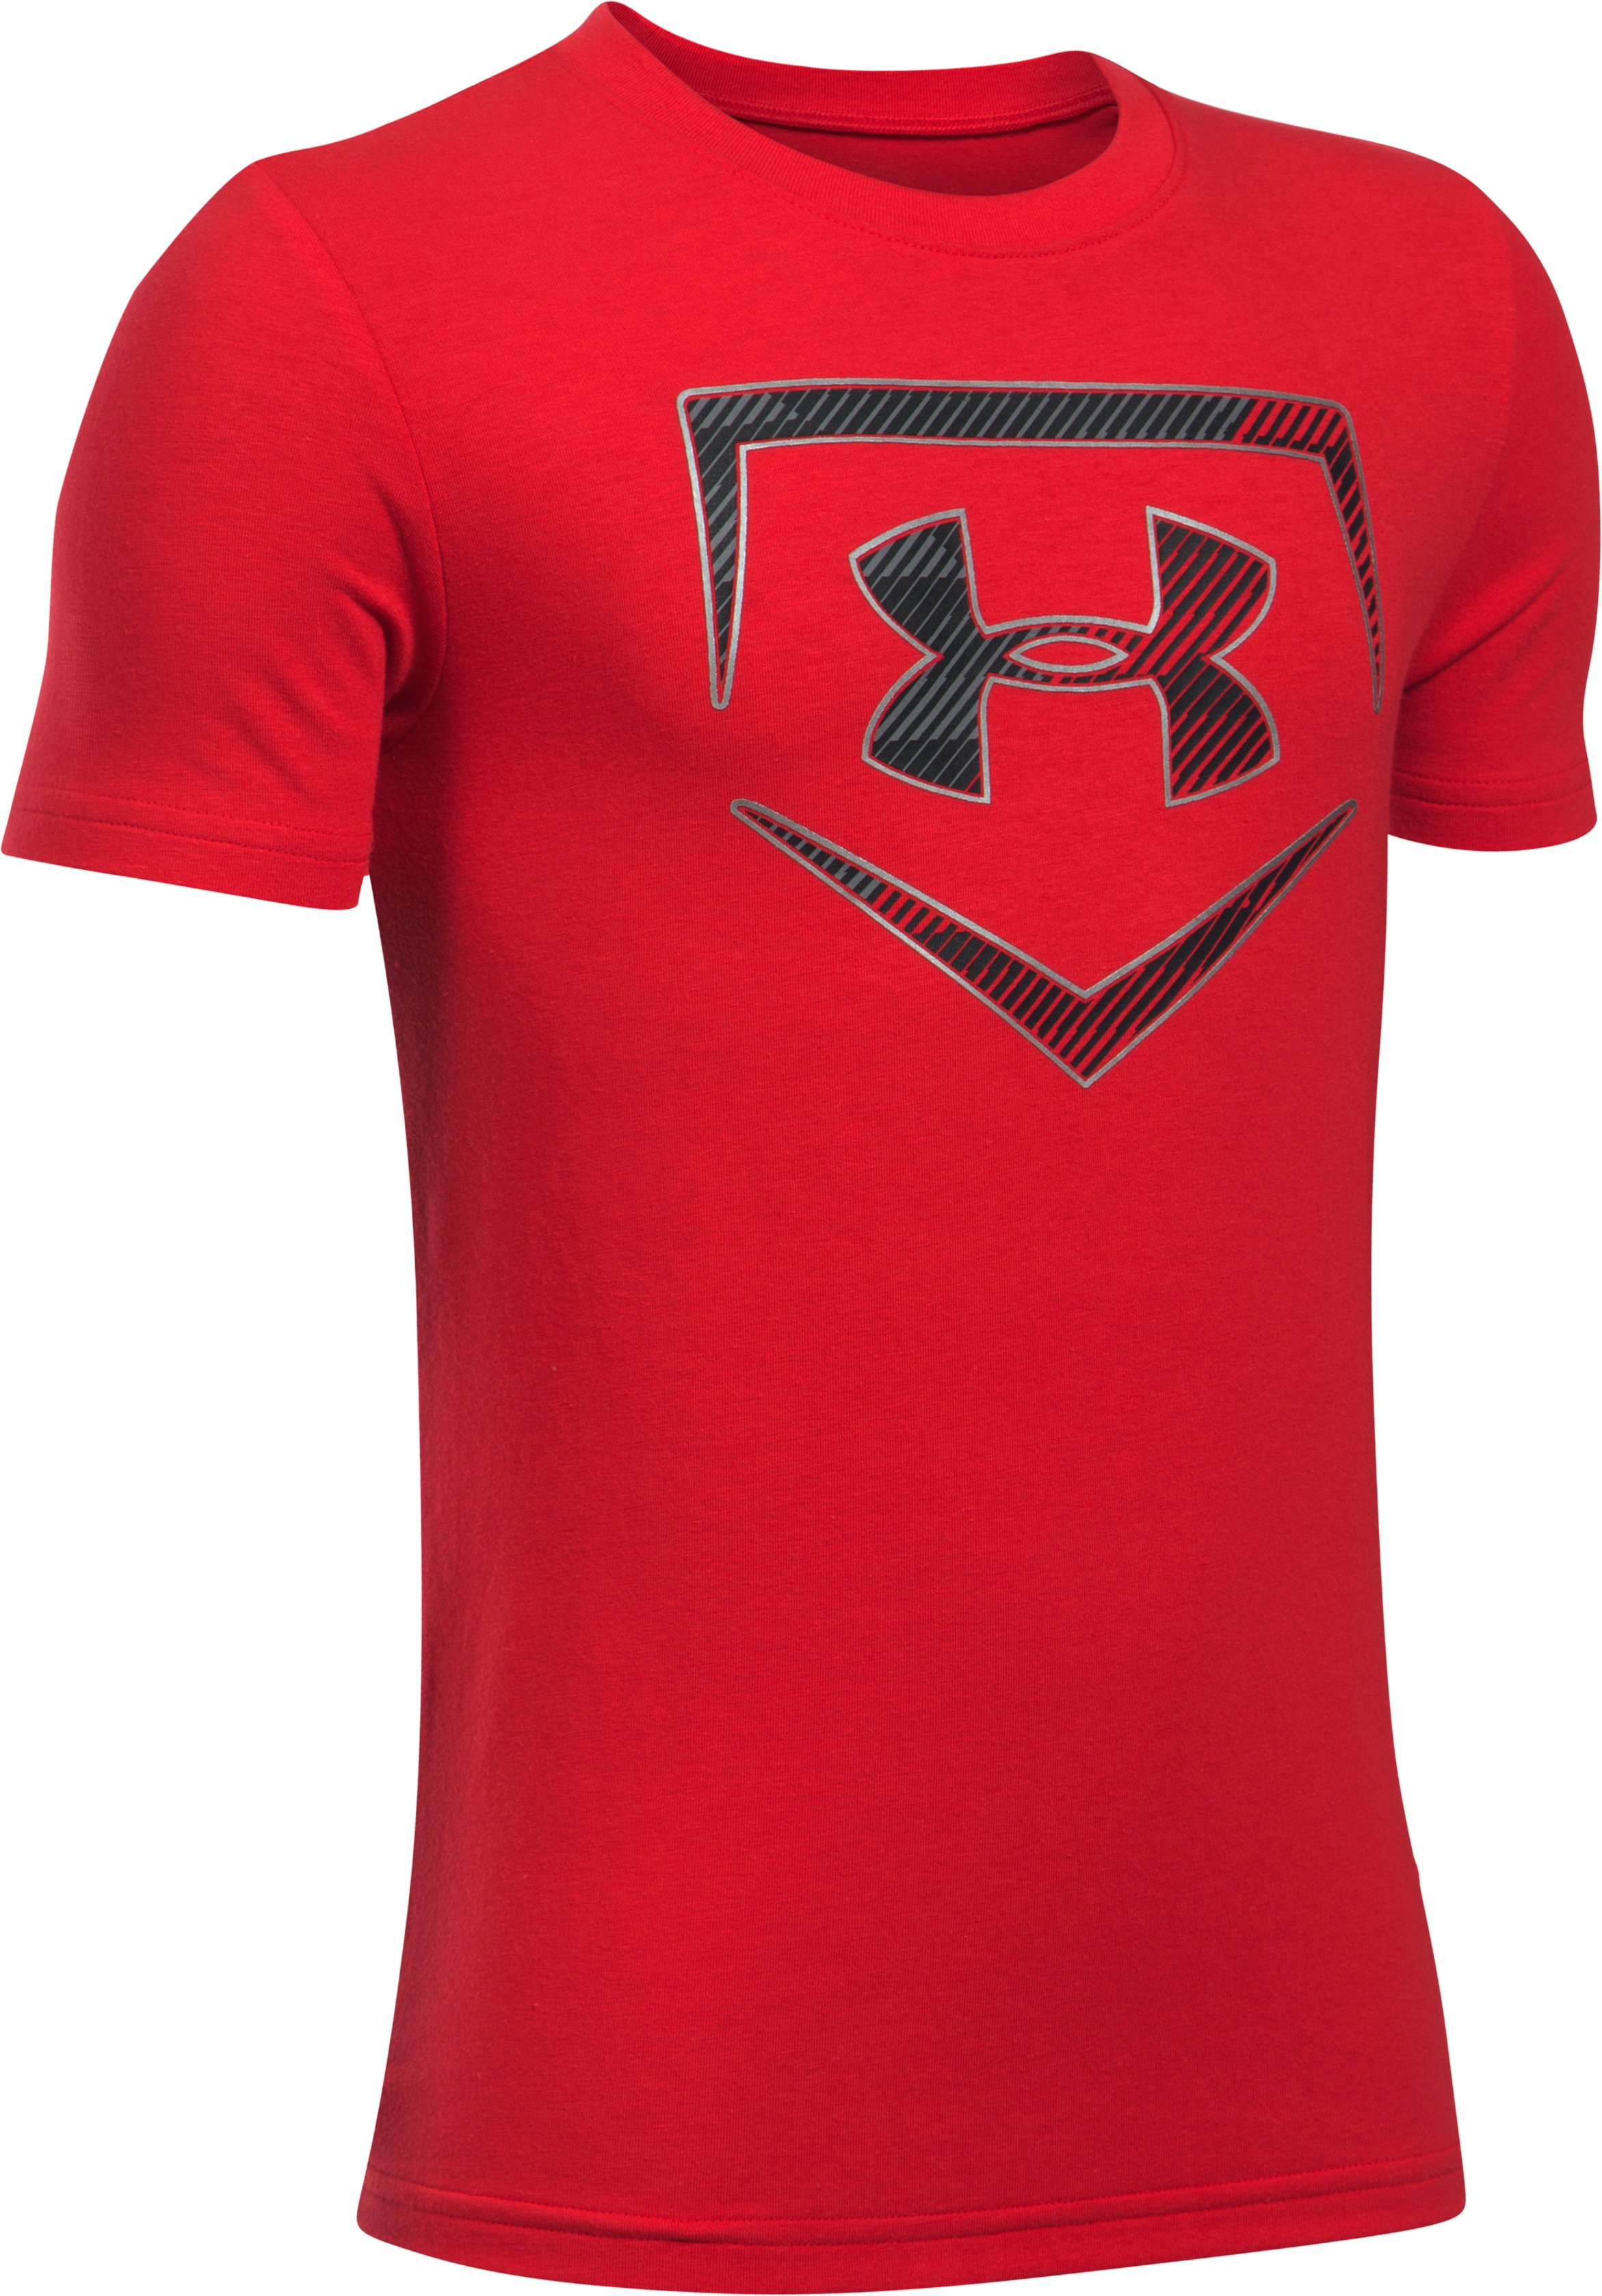 Boys' UA Baseball Logo T-Shirt, Red